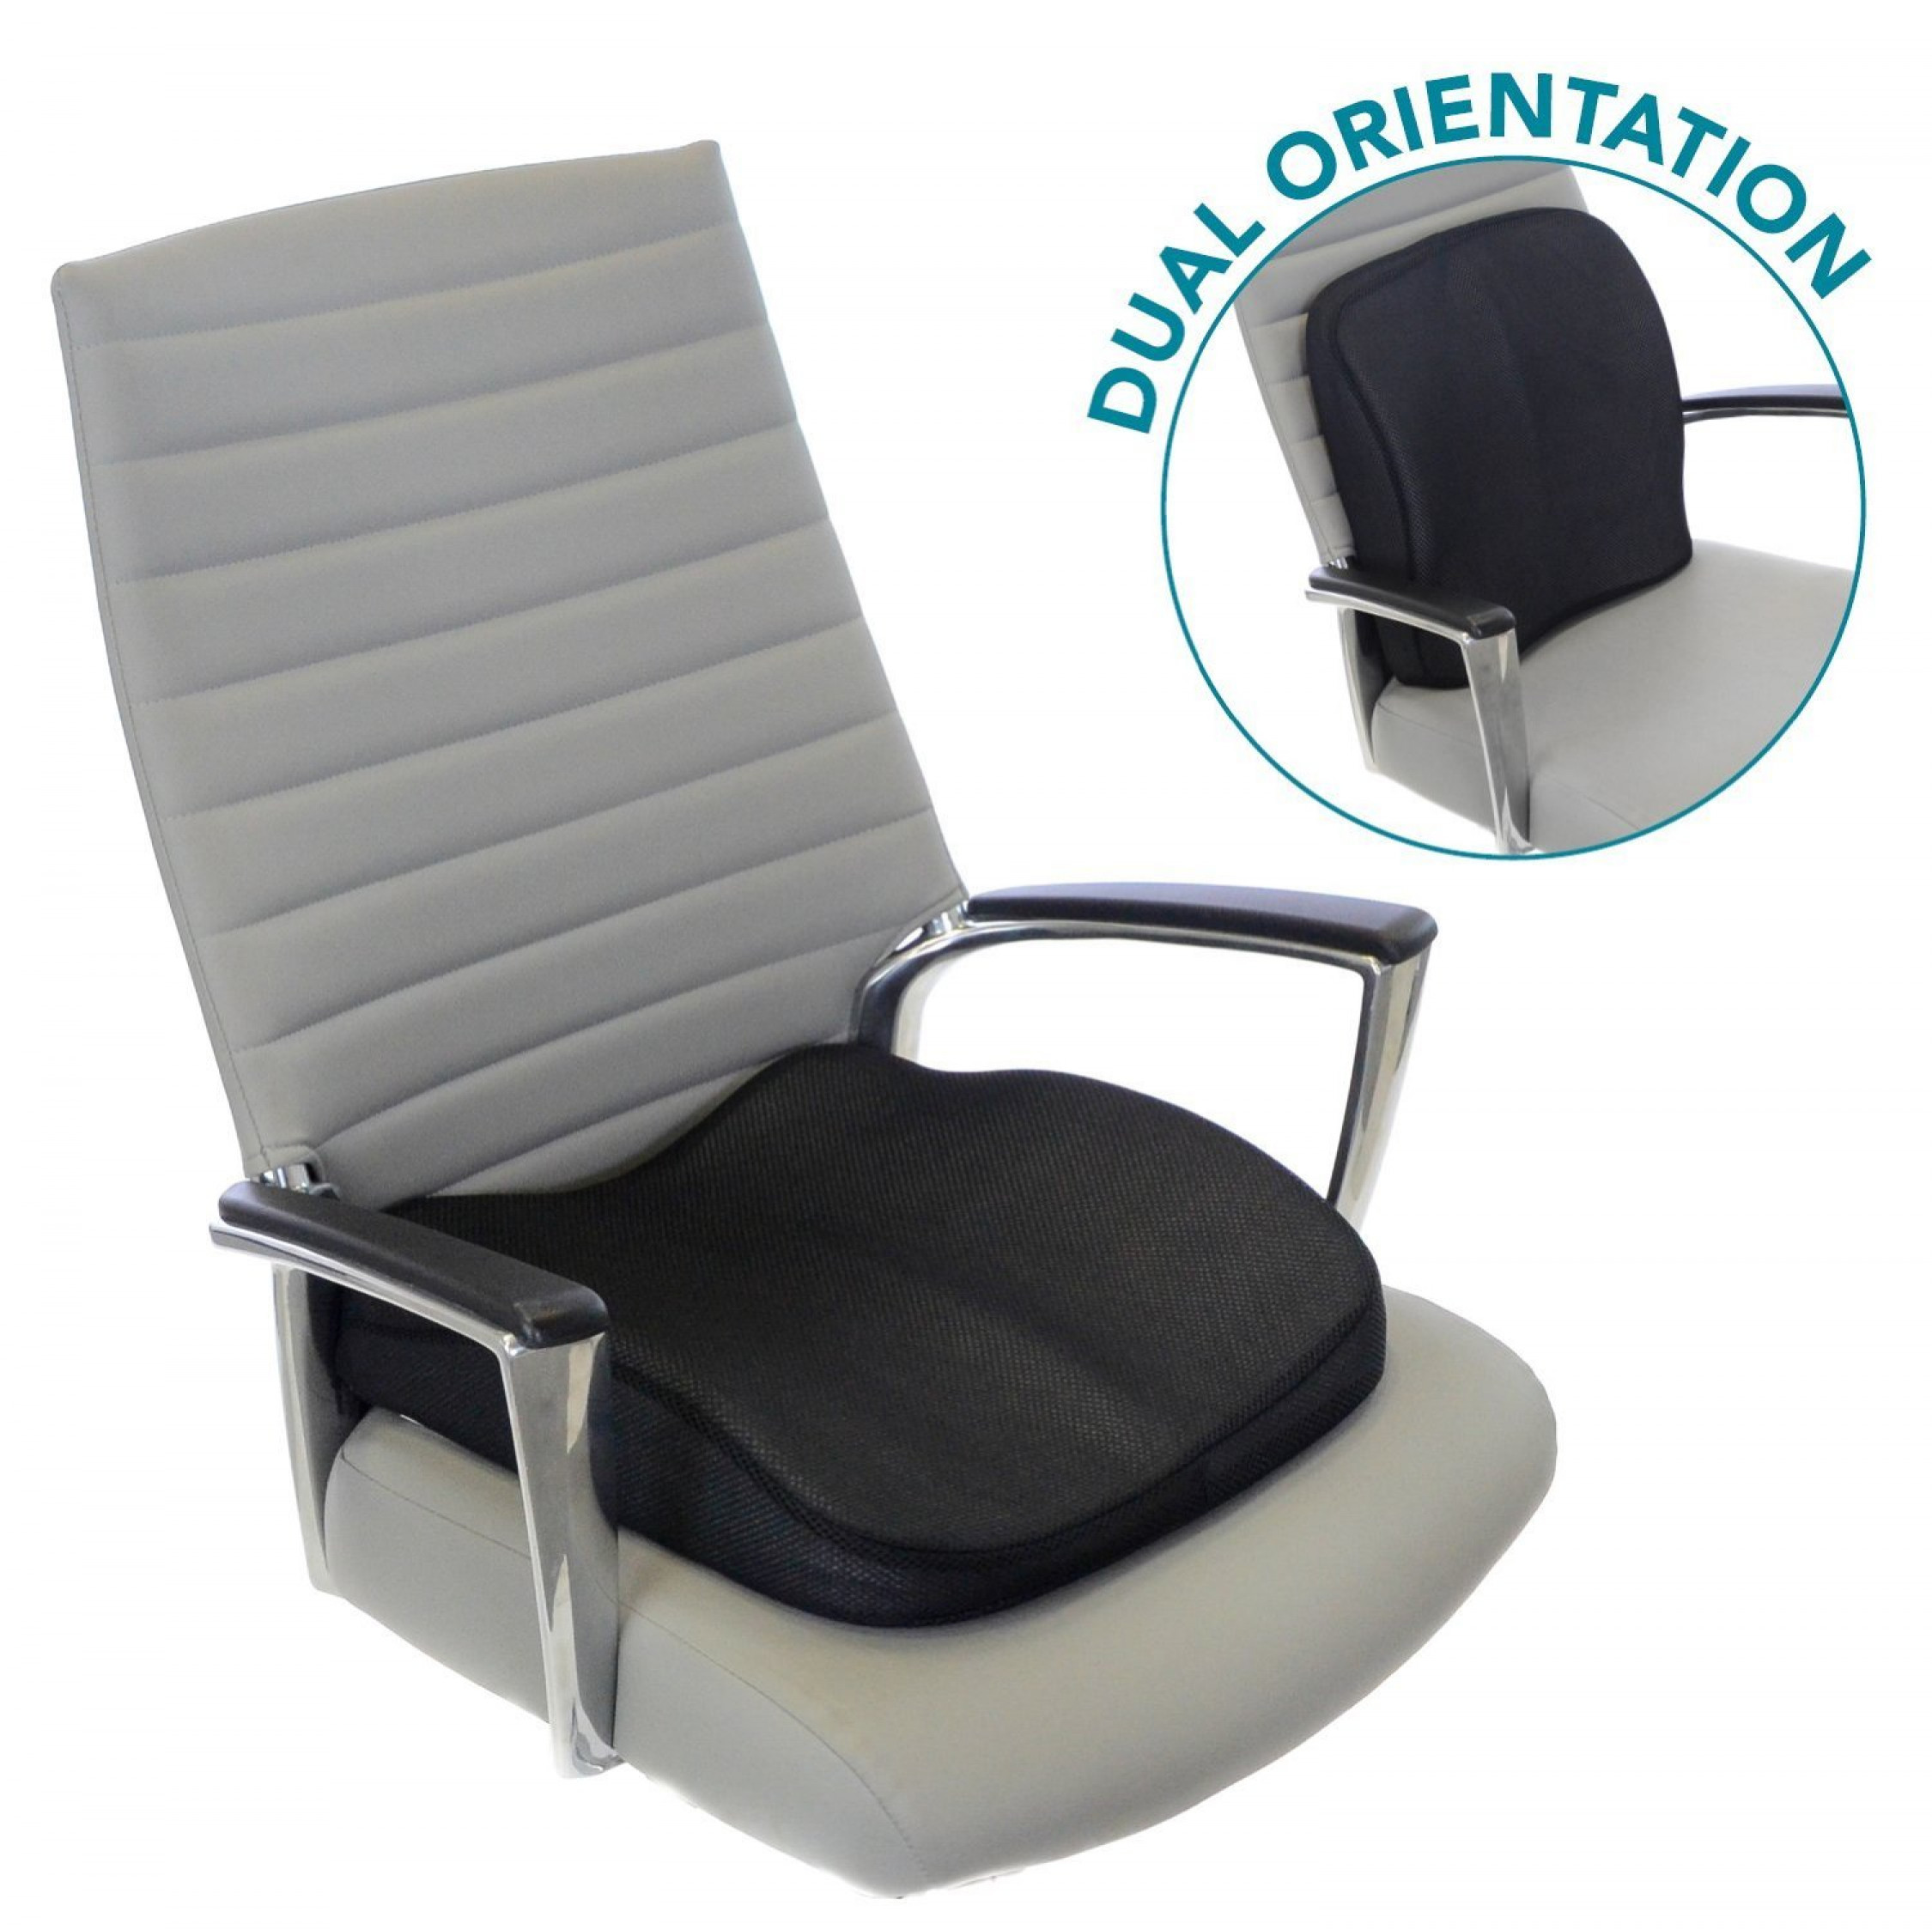 memory foam seat cushion for lower back support seat wedge office chair pad ebay. Black Bedroom Furniture Sets. Home Design Ideas